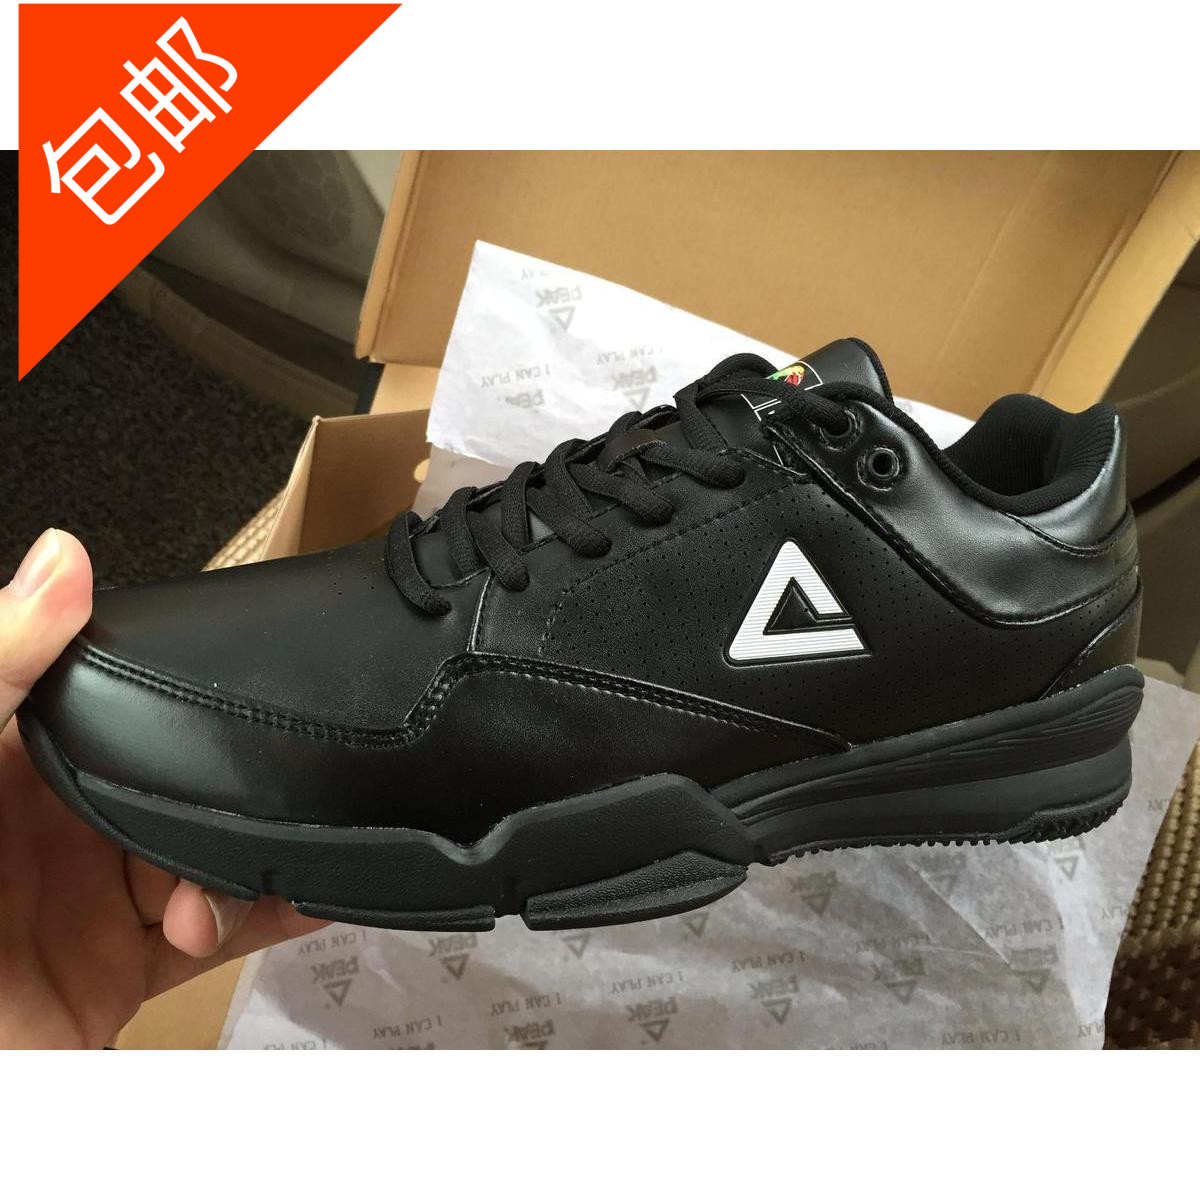 901390e0297c Sponsored FIBA basketball referee shoelace Security European Championship  spot export English sports shoes all black